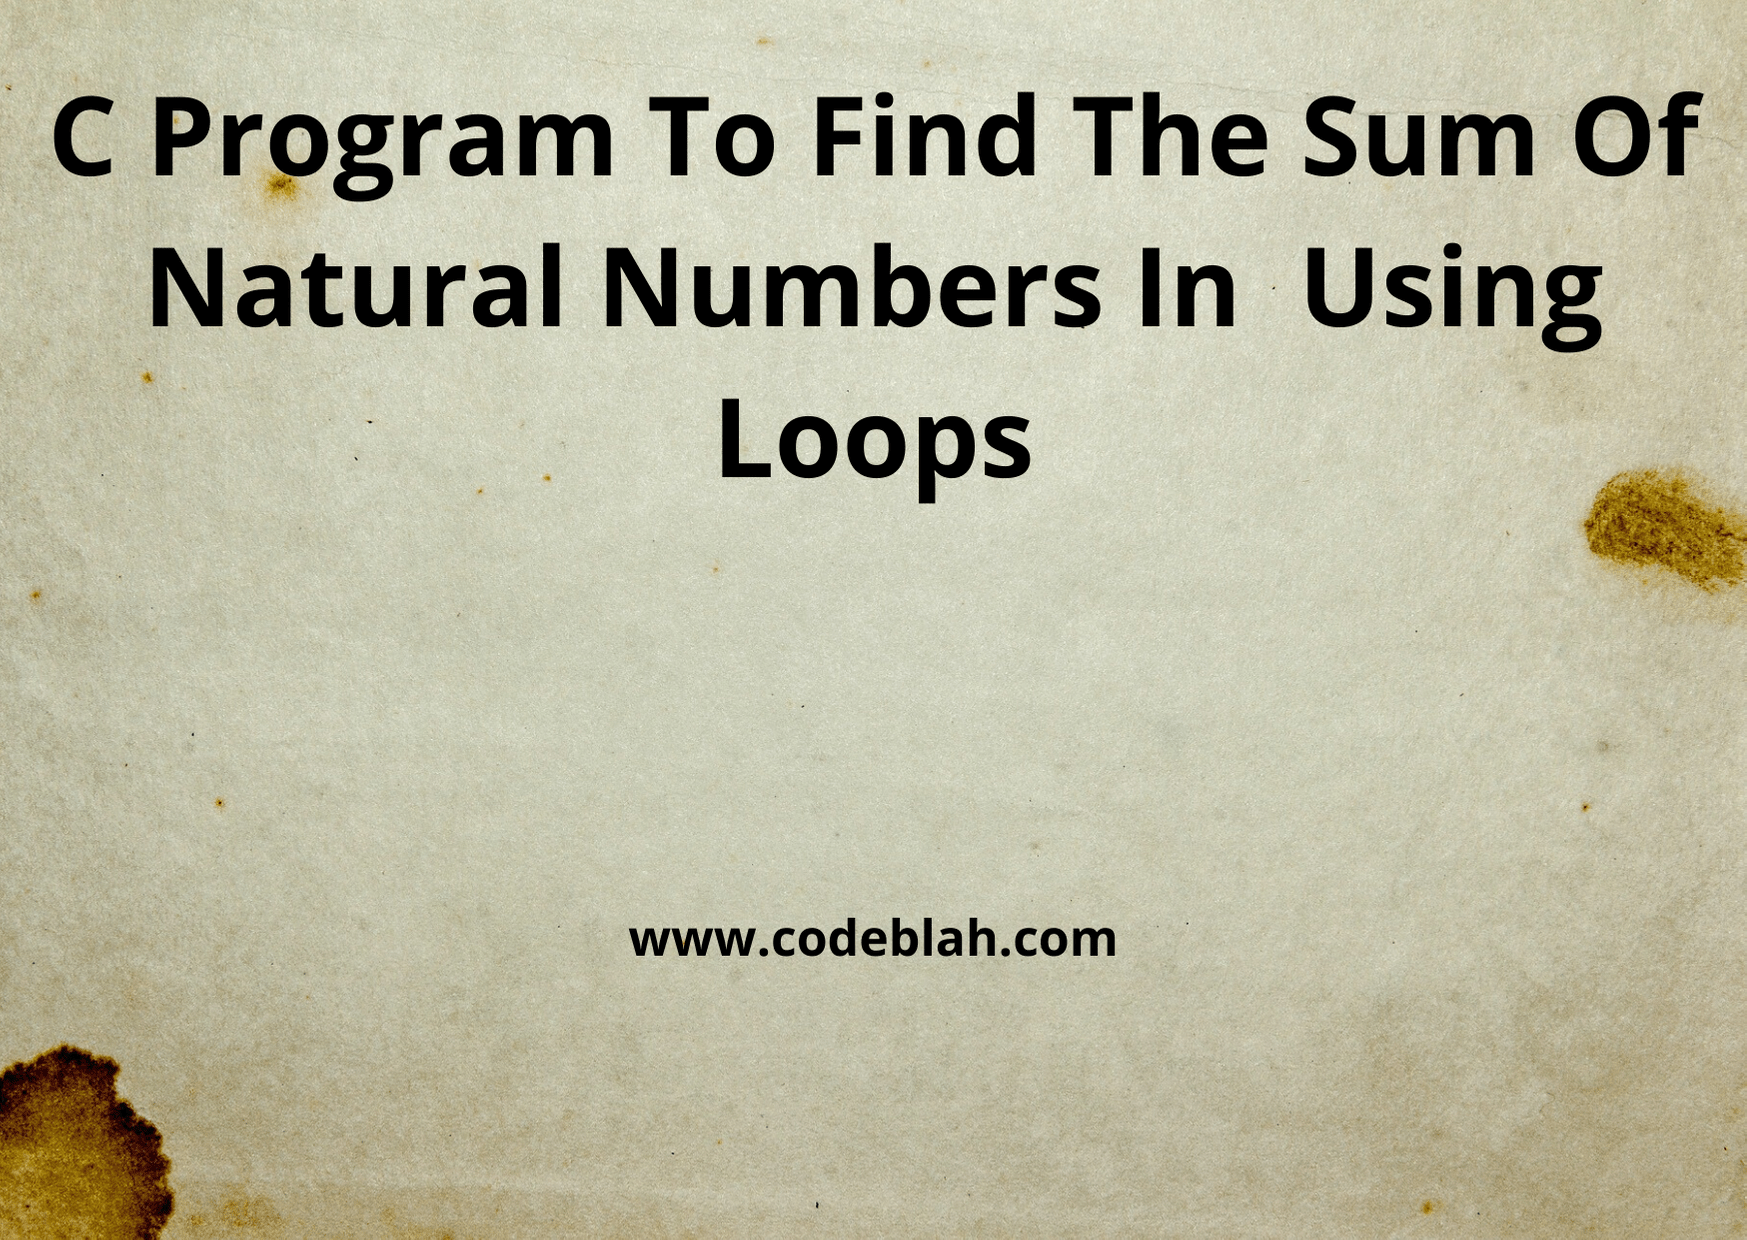 C Program to Find Sum of Natural Numbers Using While Loop